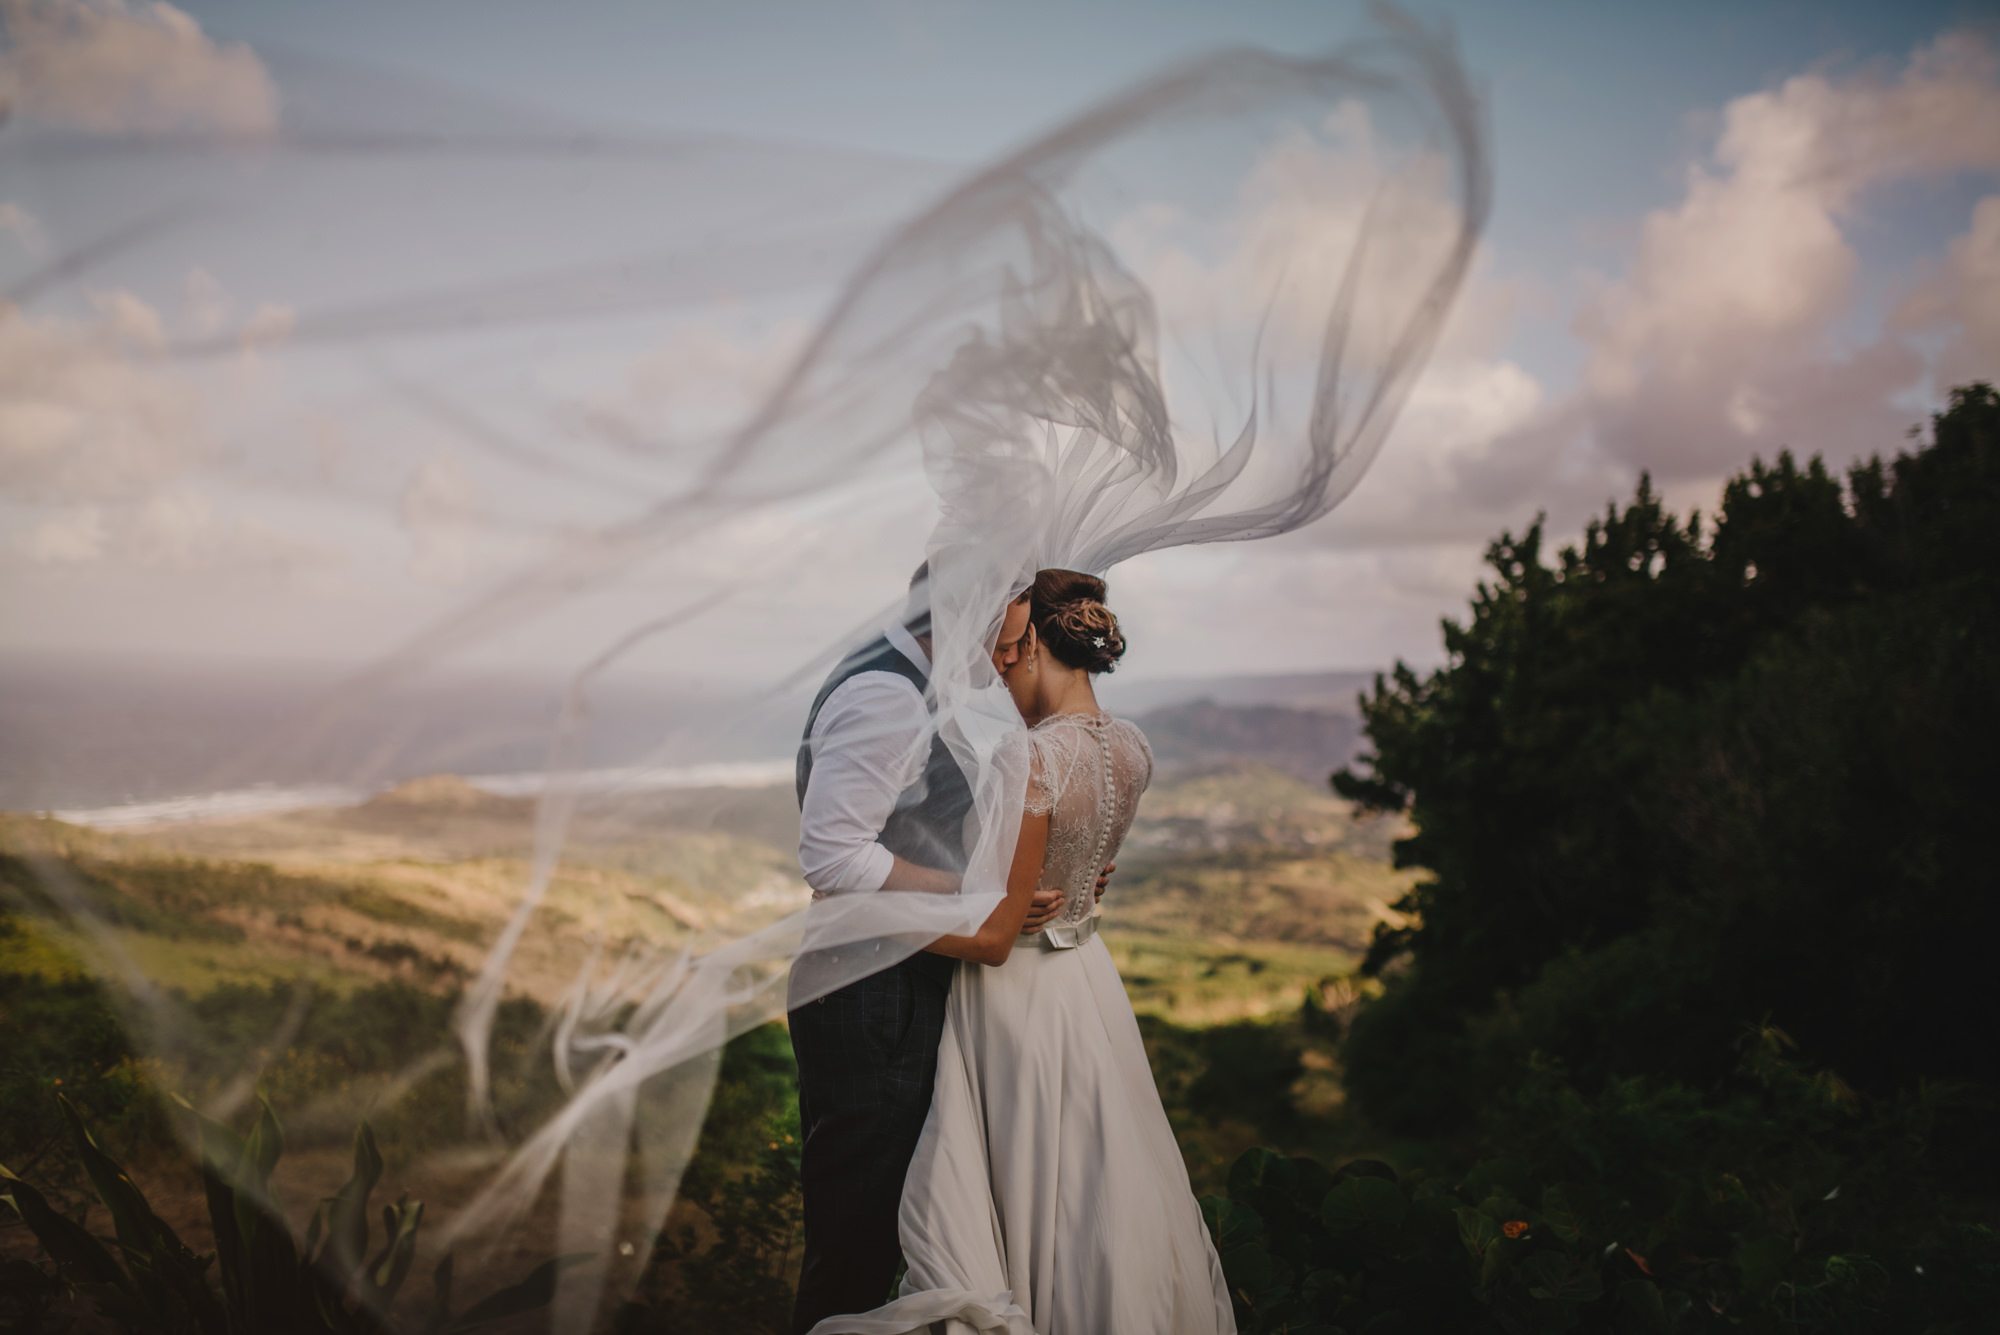 Veil billows during embrace - photo by McClintock Photography Agency